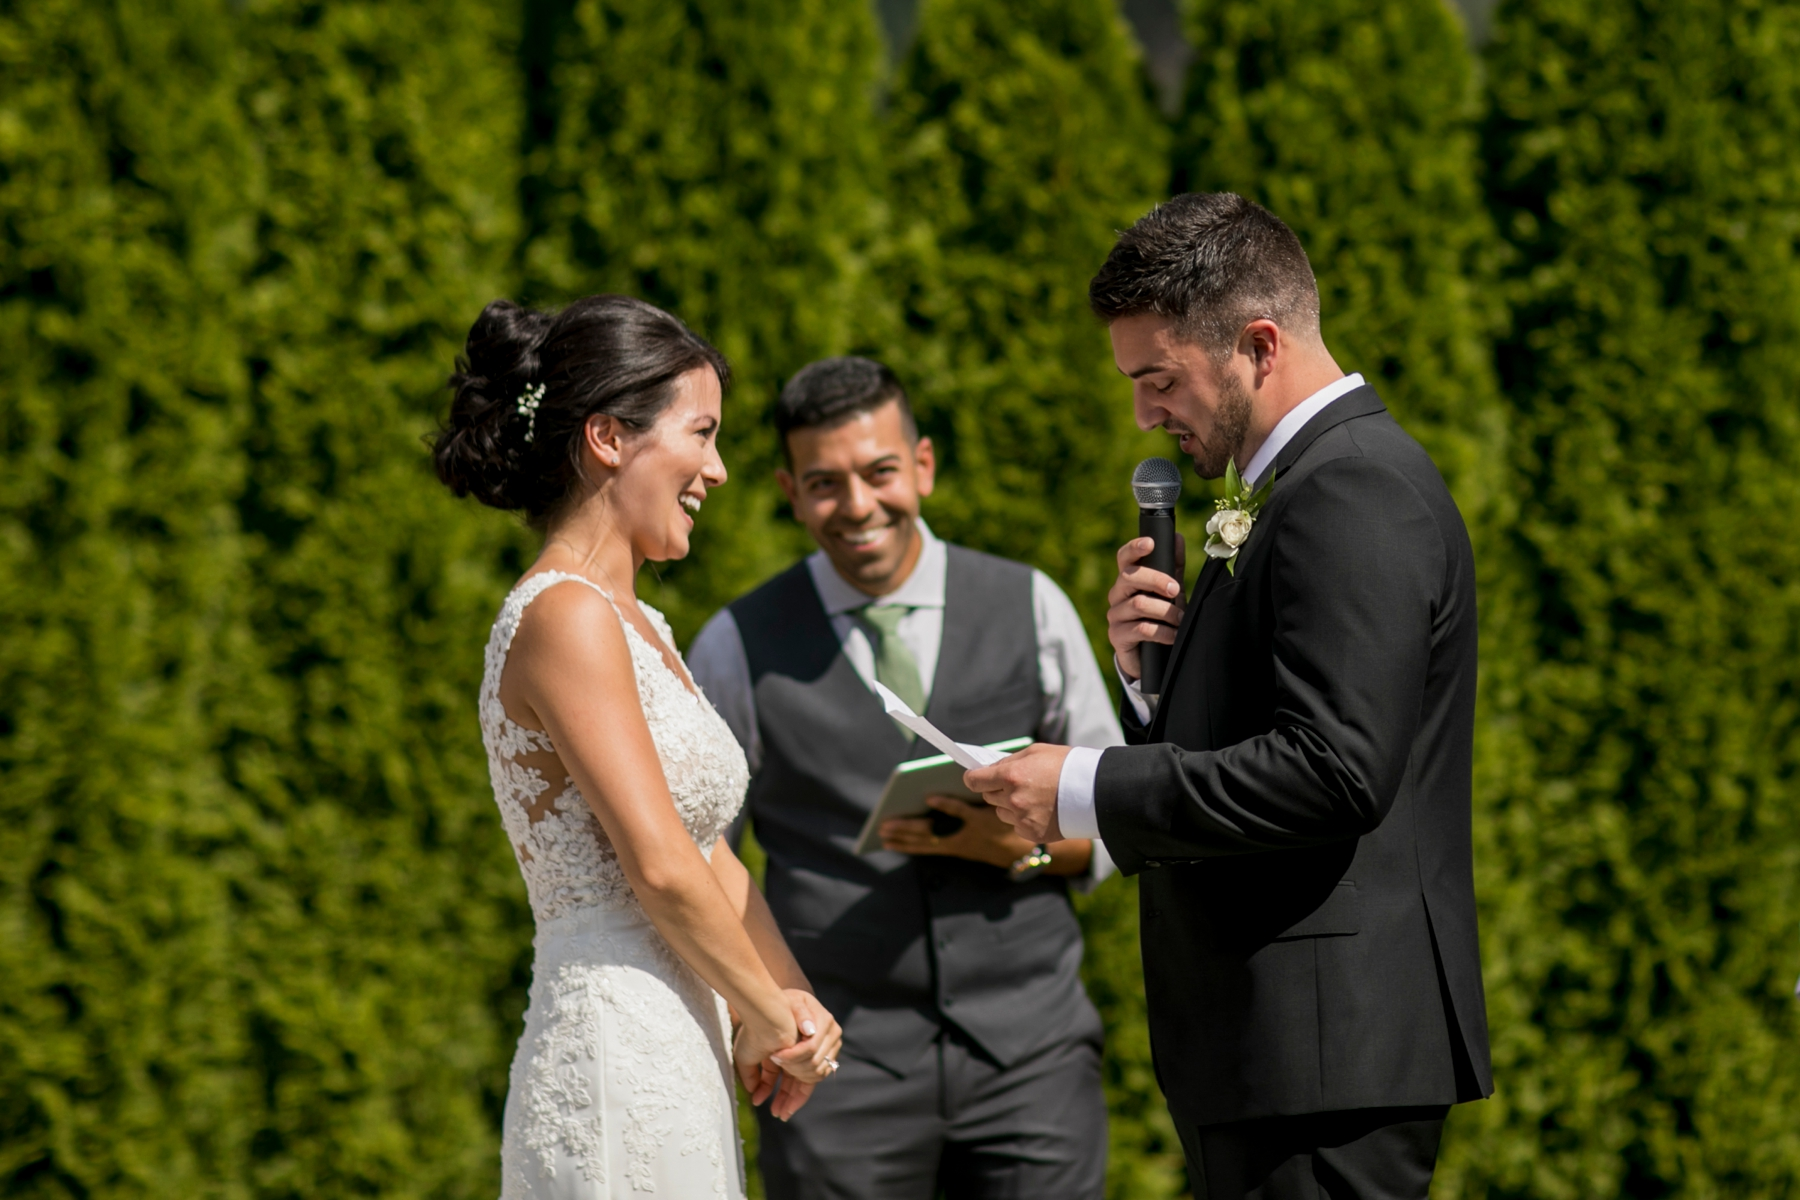 seatte, wedding, photographer, North Bend, Bybee Farms, Snoqualmie, issaqua,_0046.jpg